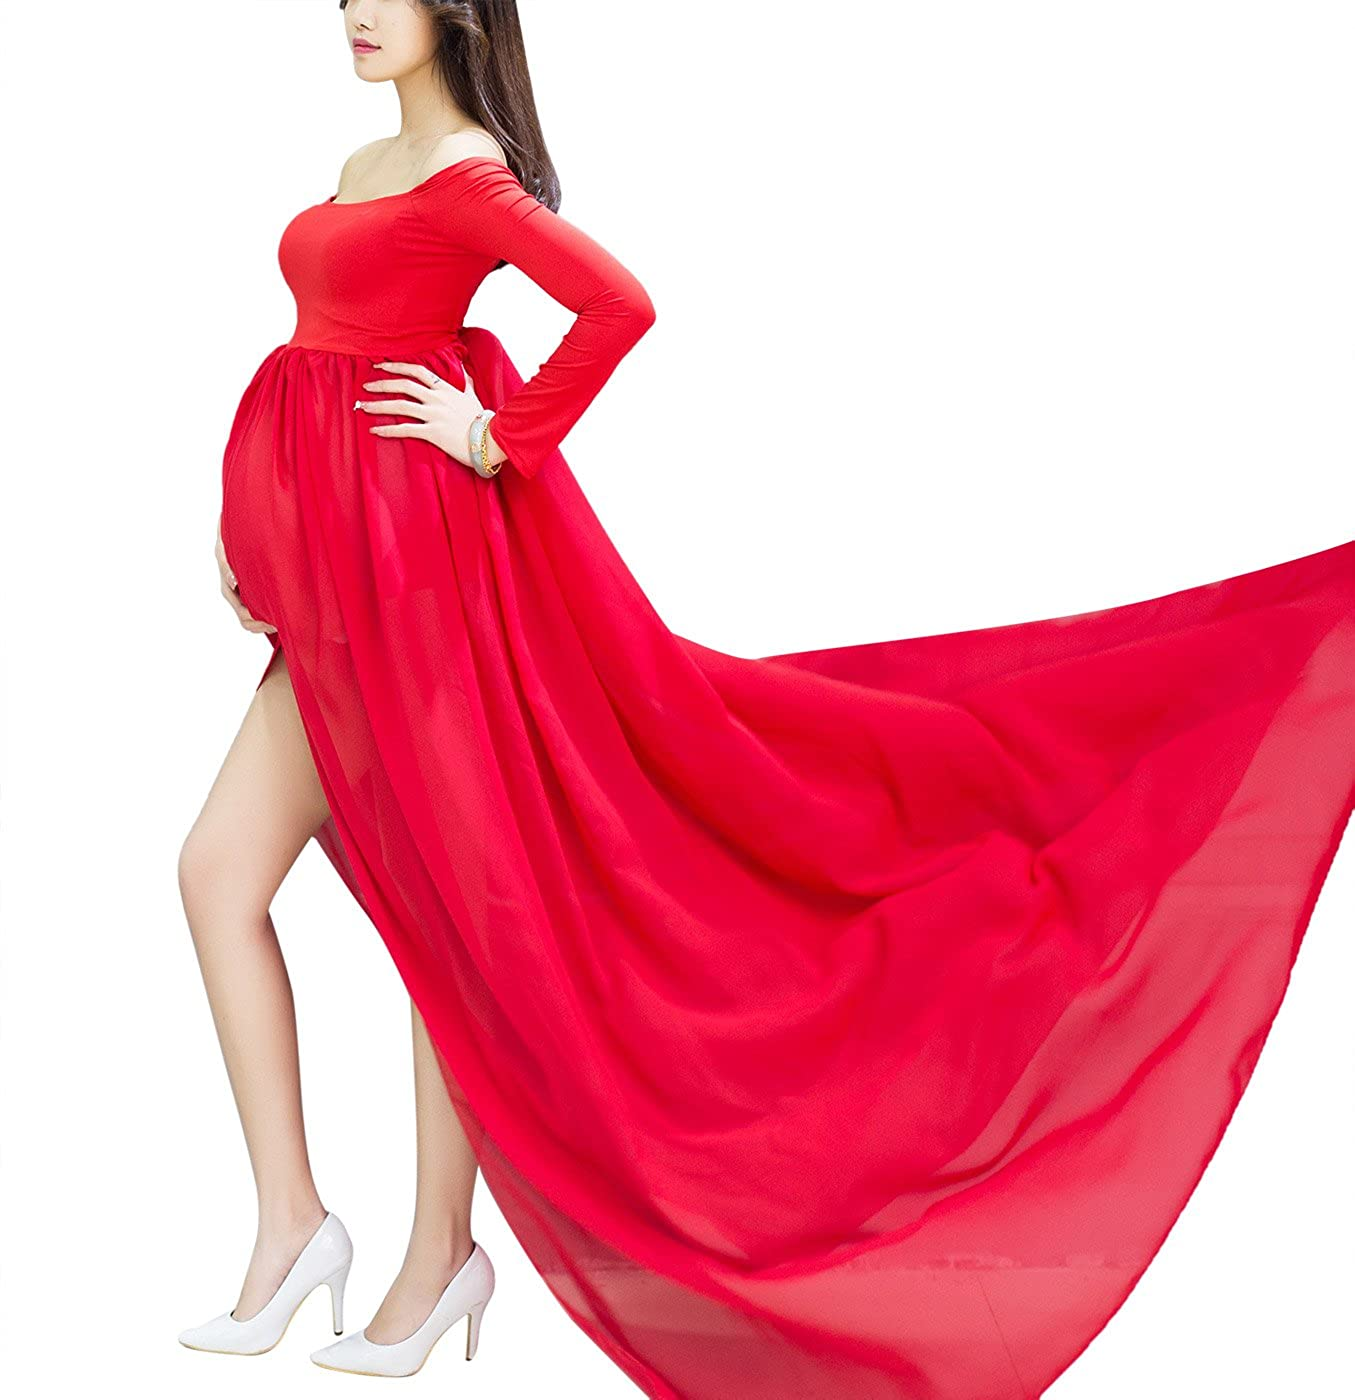 Maternity Sleeved Photography Dress Split Front Off shoulder Gowns with Underwear Aivtalk